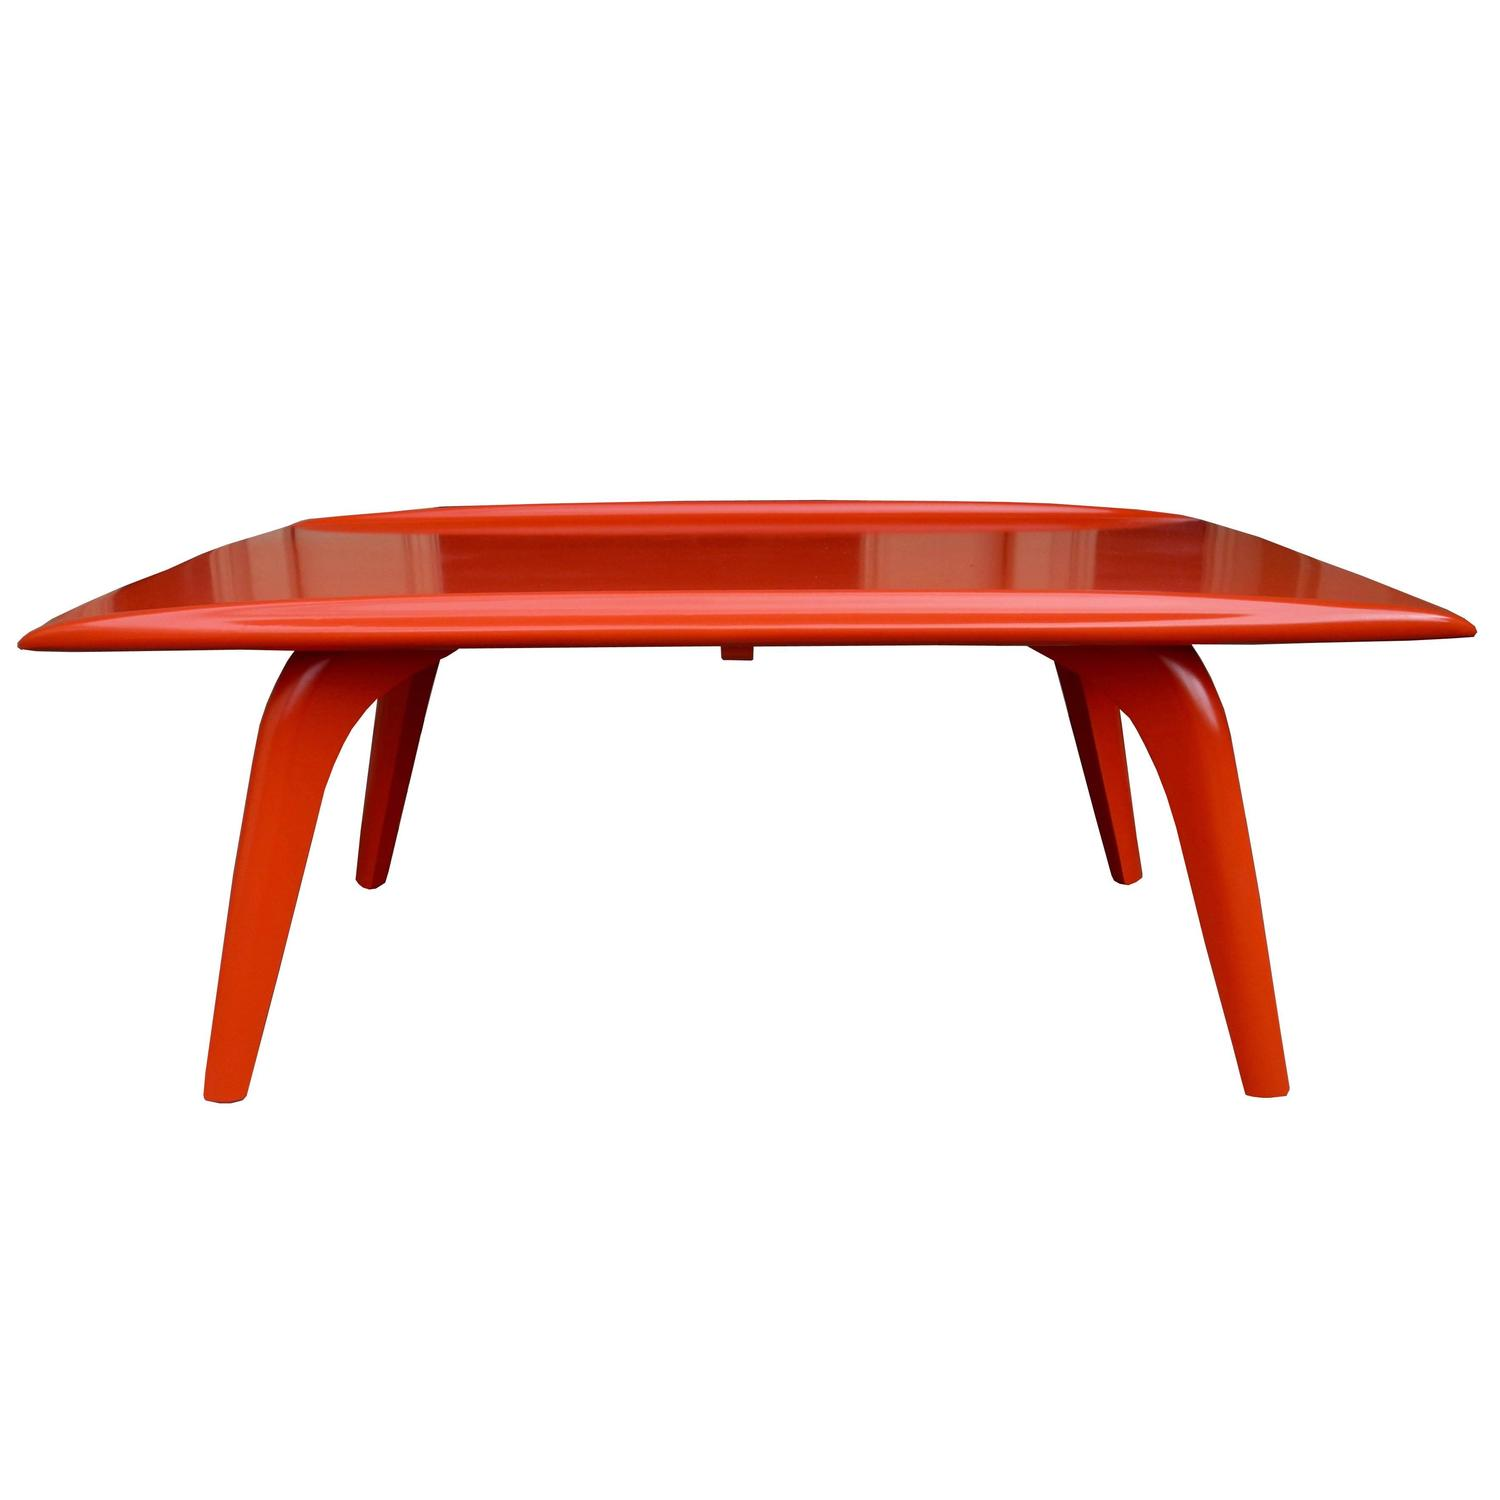 Heywood Retro Coffee Table: Orange Red Mid-Century Modern Coffee Table By Heywood